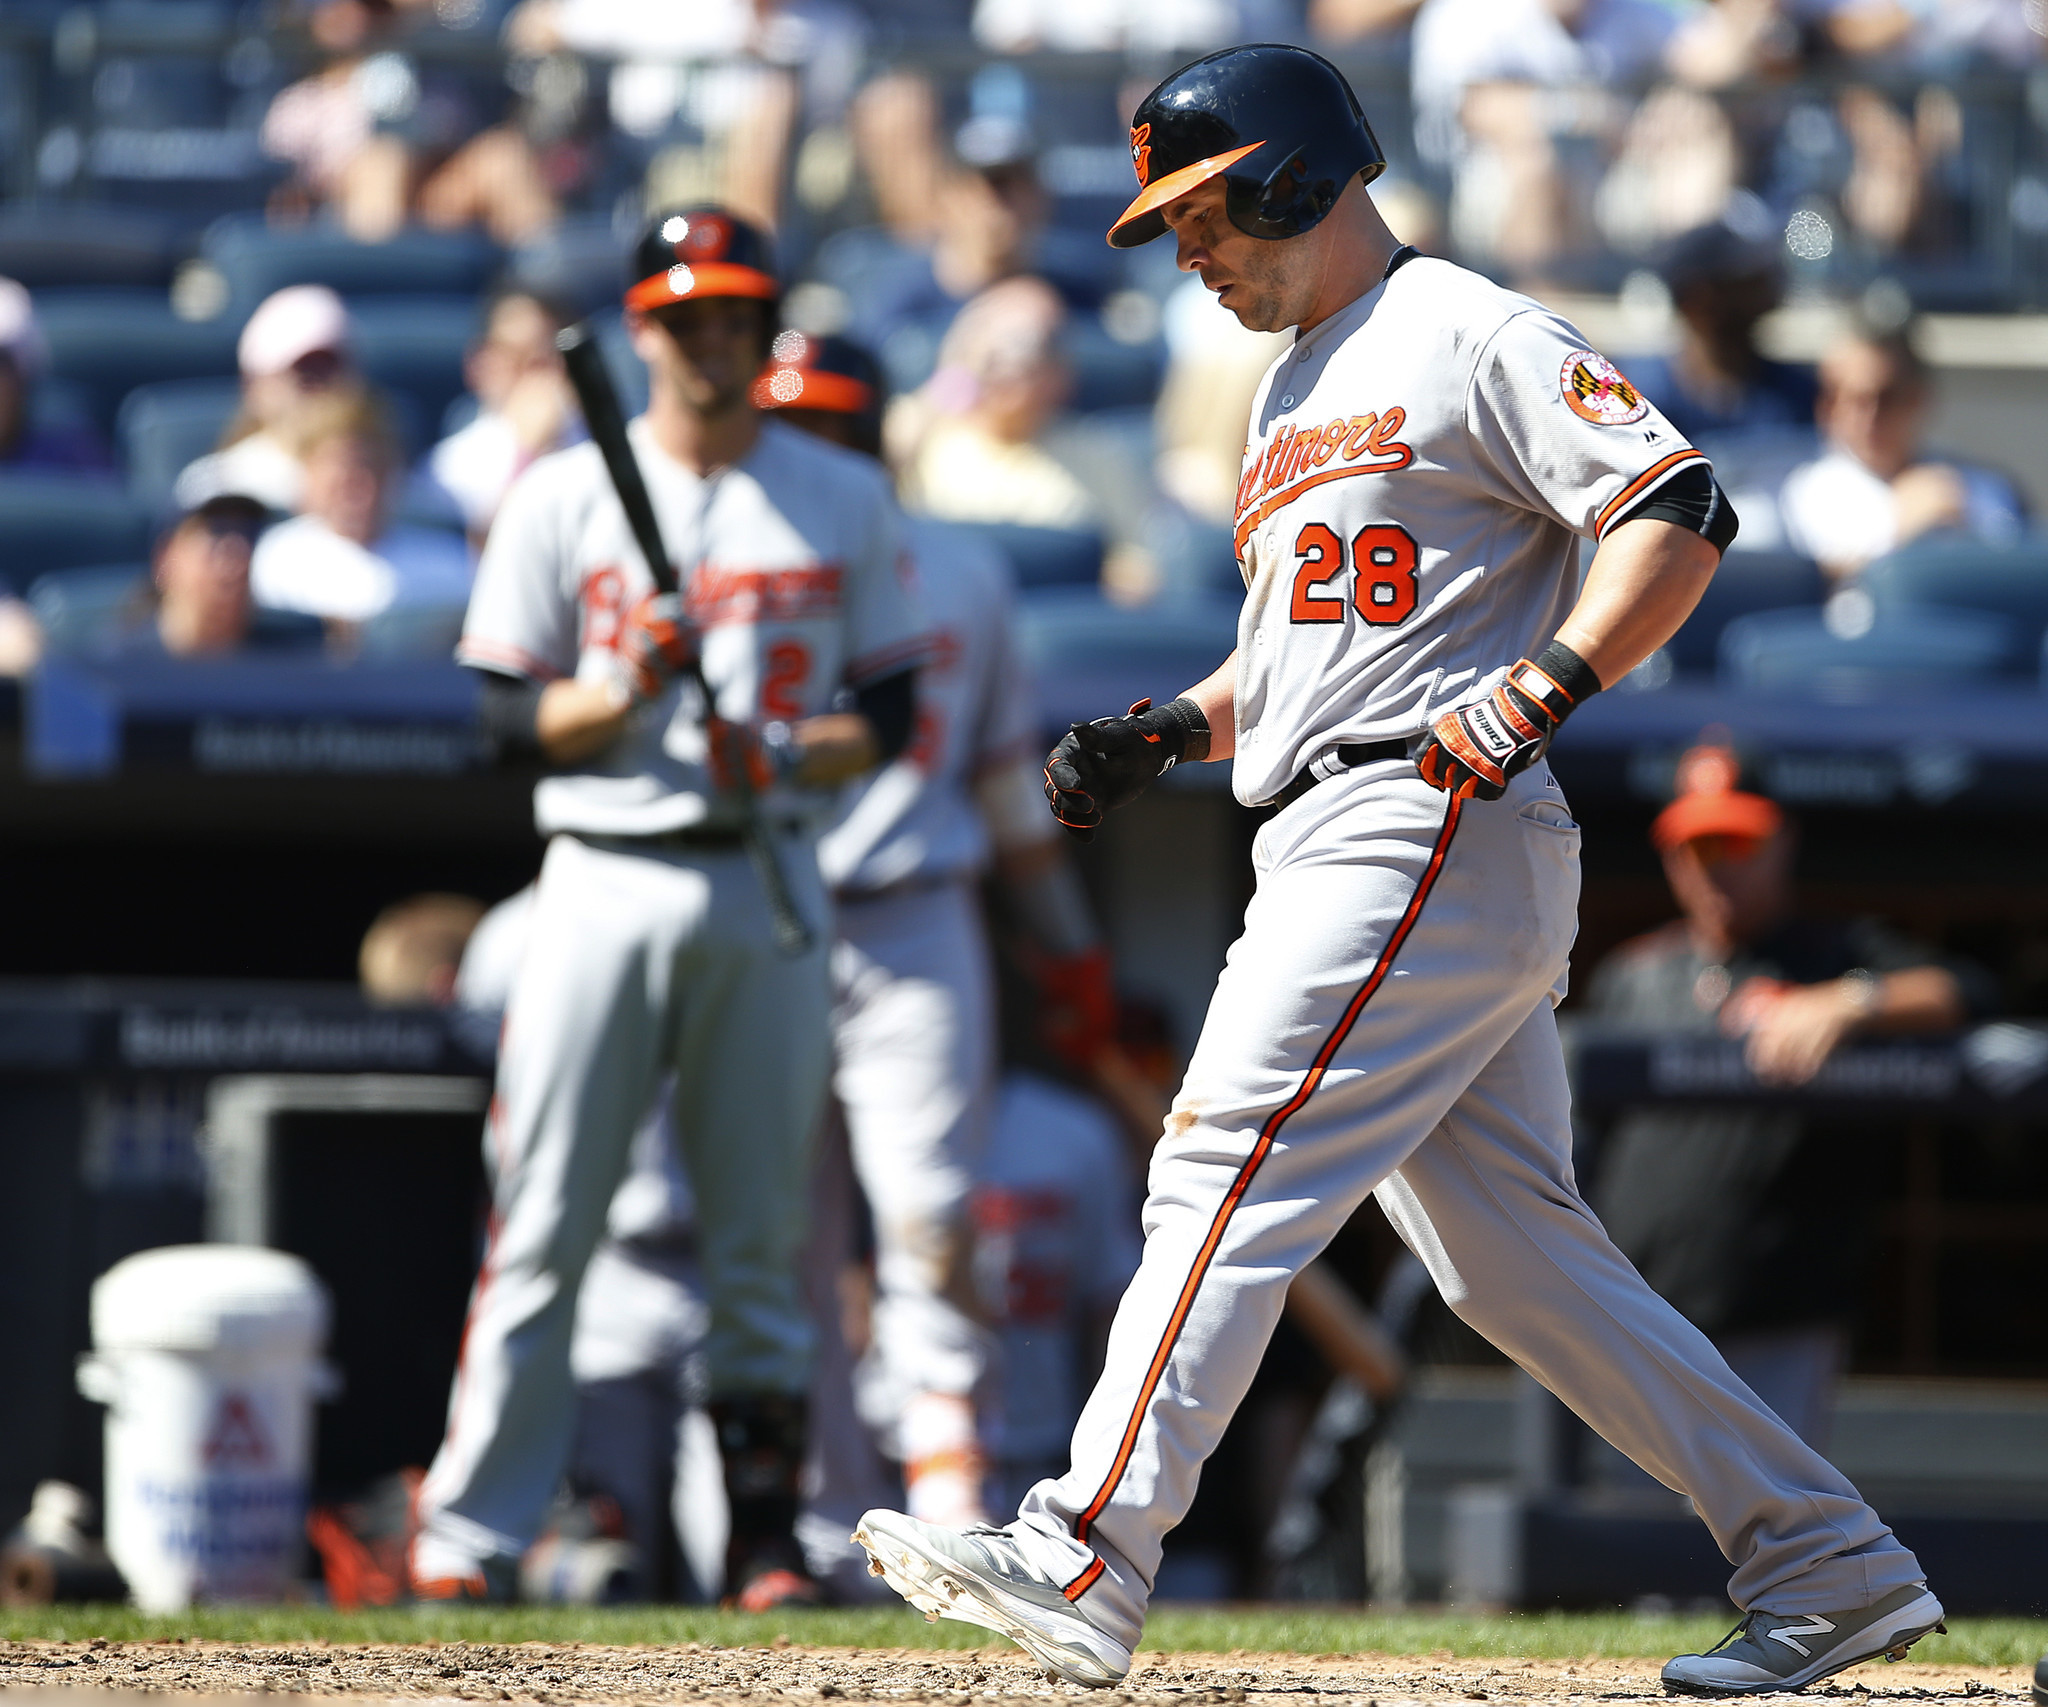 Bal-orioles-steve-pearce-leaves-game-sunday-after-aggravating-arm-injury-exit-said-to-be-precautionary-20160828